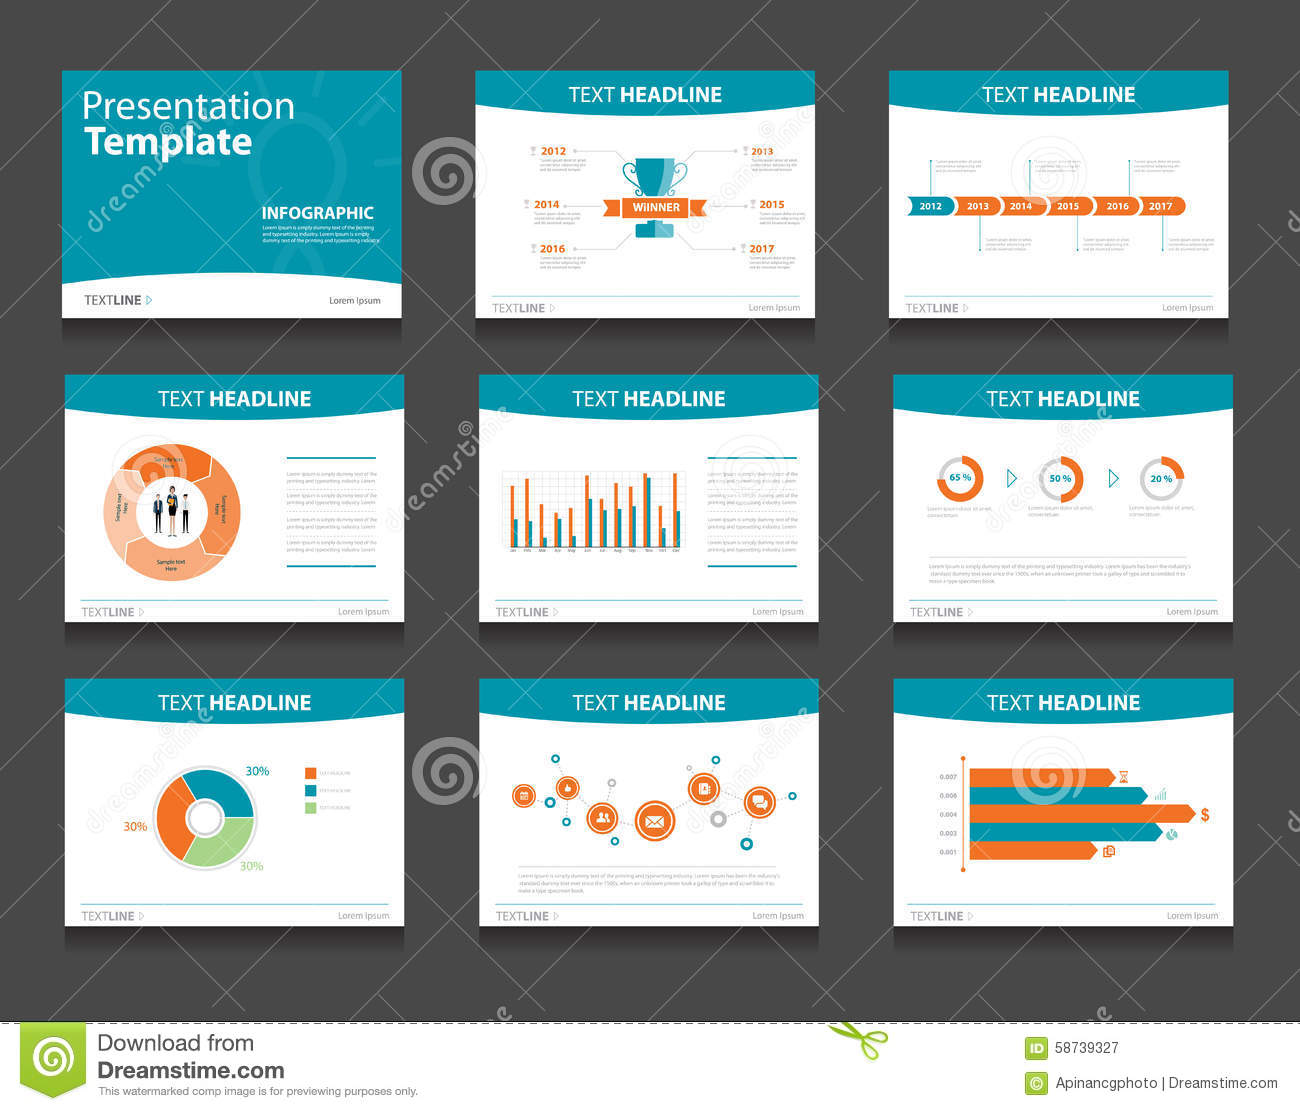 Infographic powerpoint template design backgrounds business infographic powerpoint template design backgrounds business presentation template set toneelgroepblik Gallery